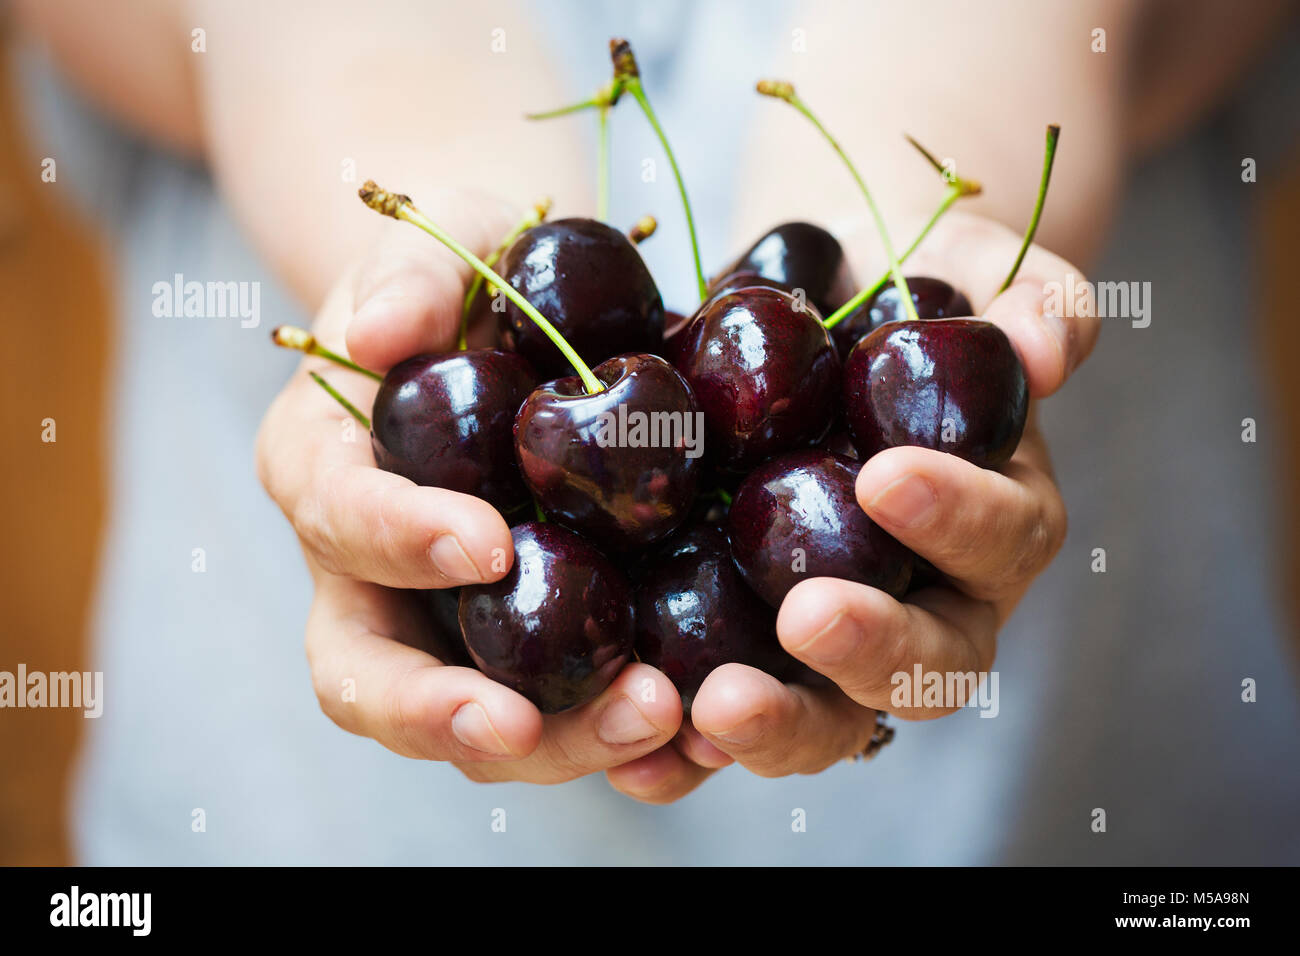 A woman's hands holding a bunch of dark red cherries. - Stock Image